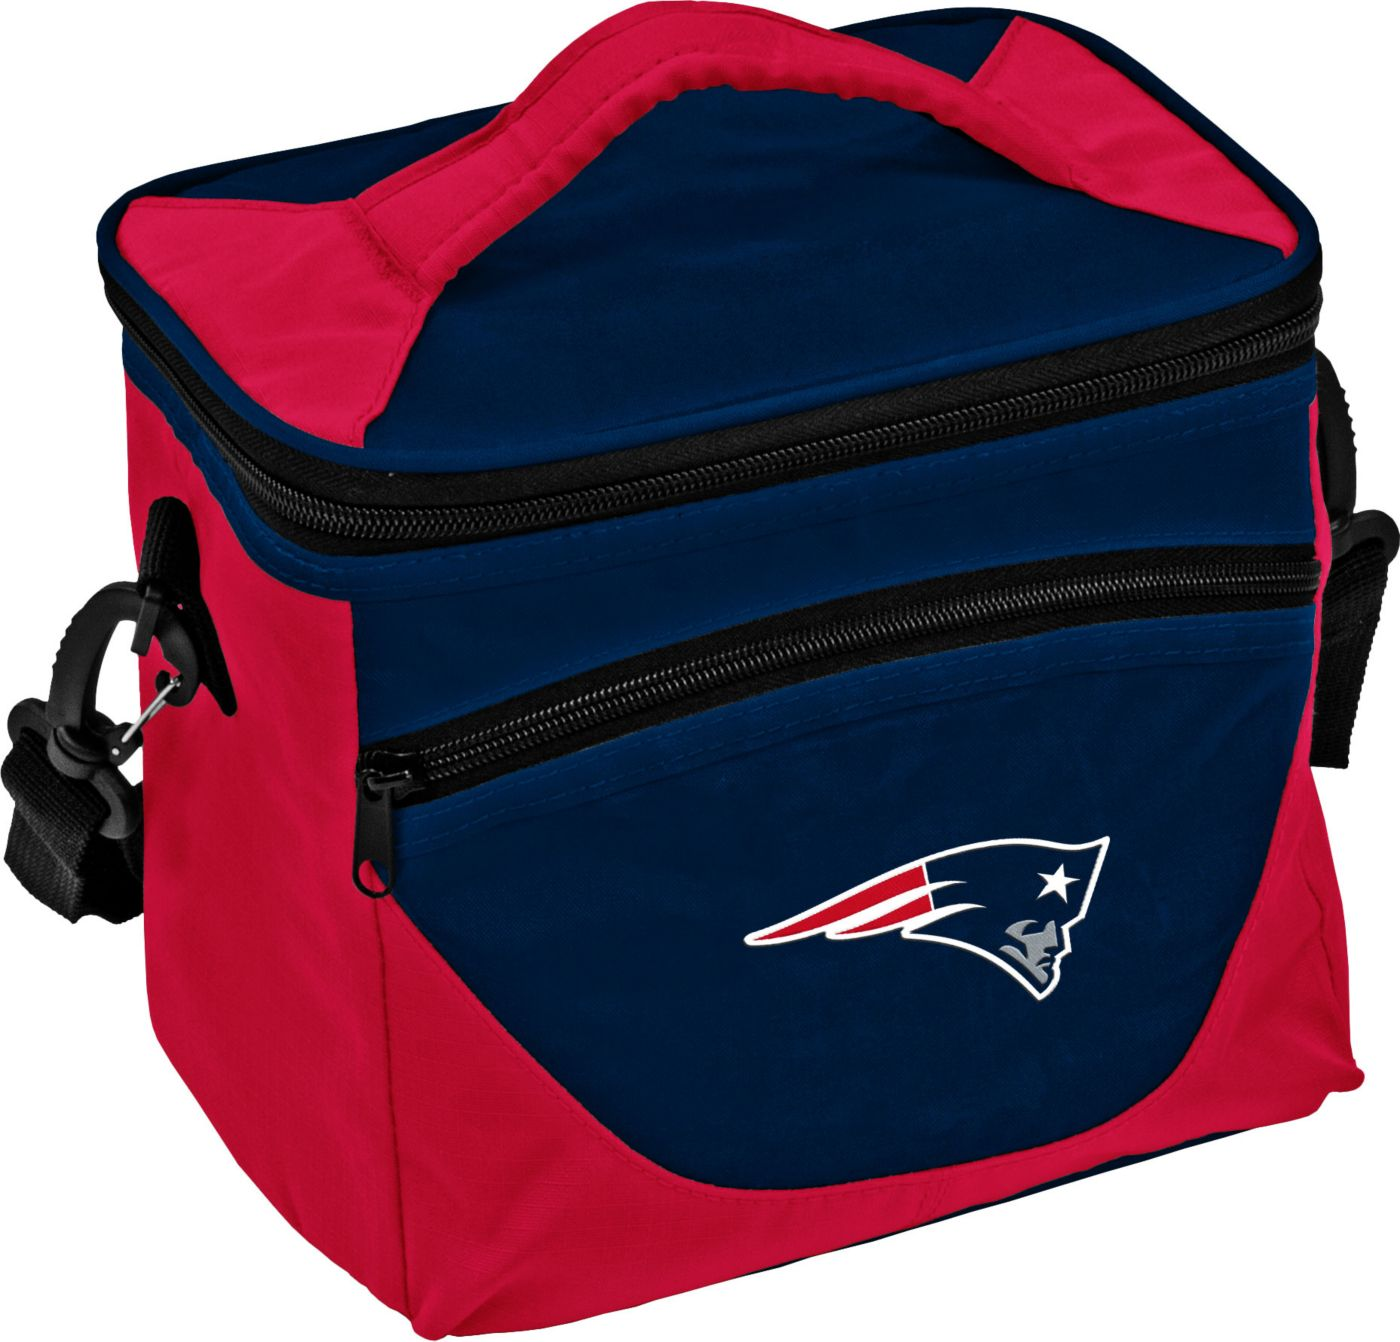 New England Patriots Halftime Lunch Cooler